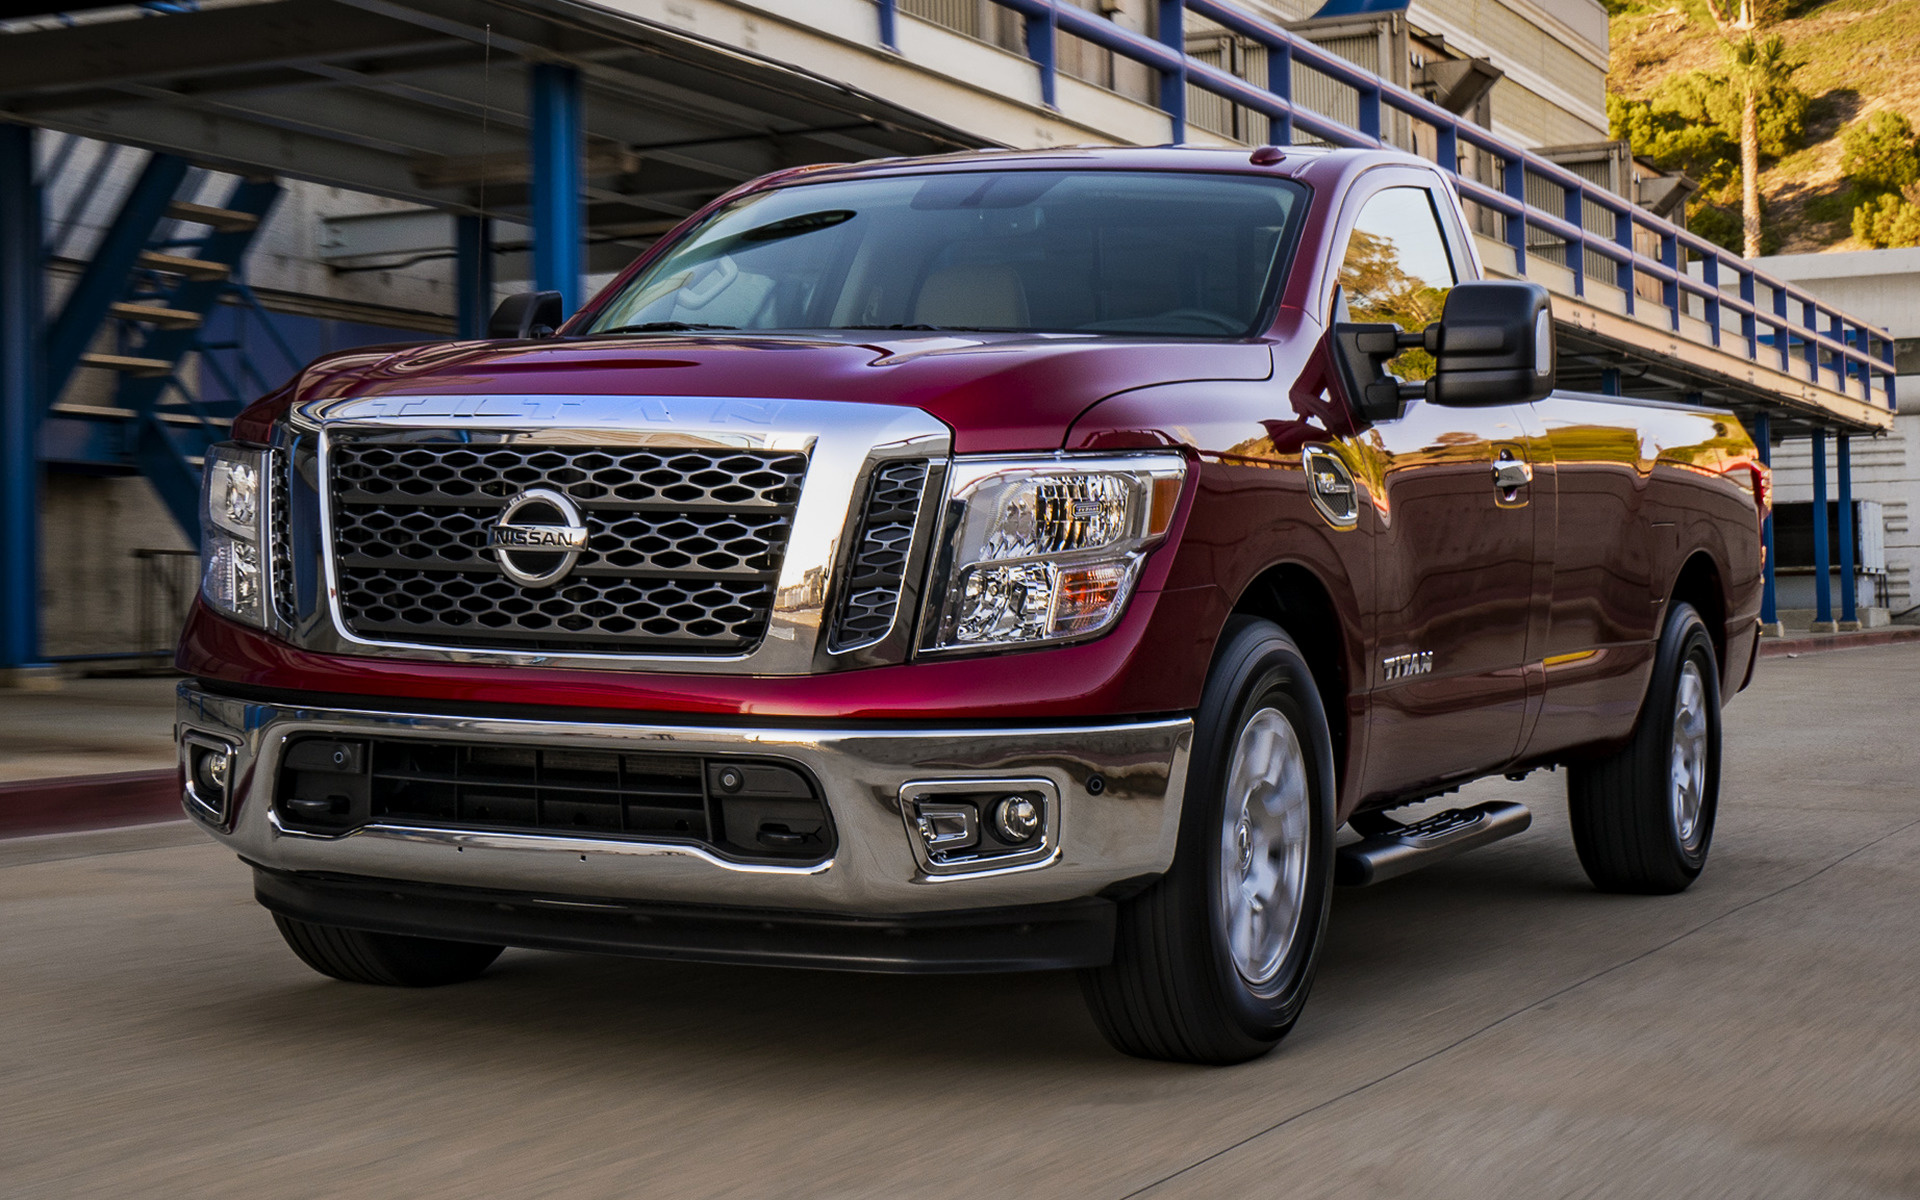 Nissan Titan SV (2017) Wallpapers and HD Images - Car Pixel